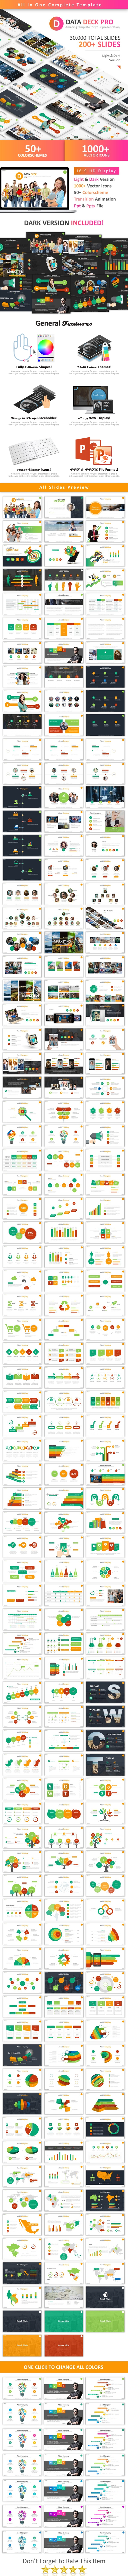 GraphicRiver Data Deck Pro Powerpoint 21111213